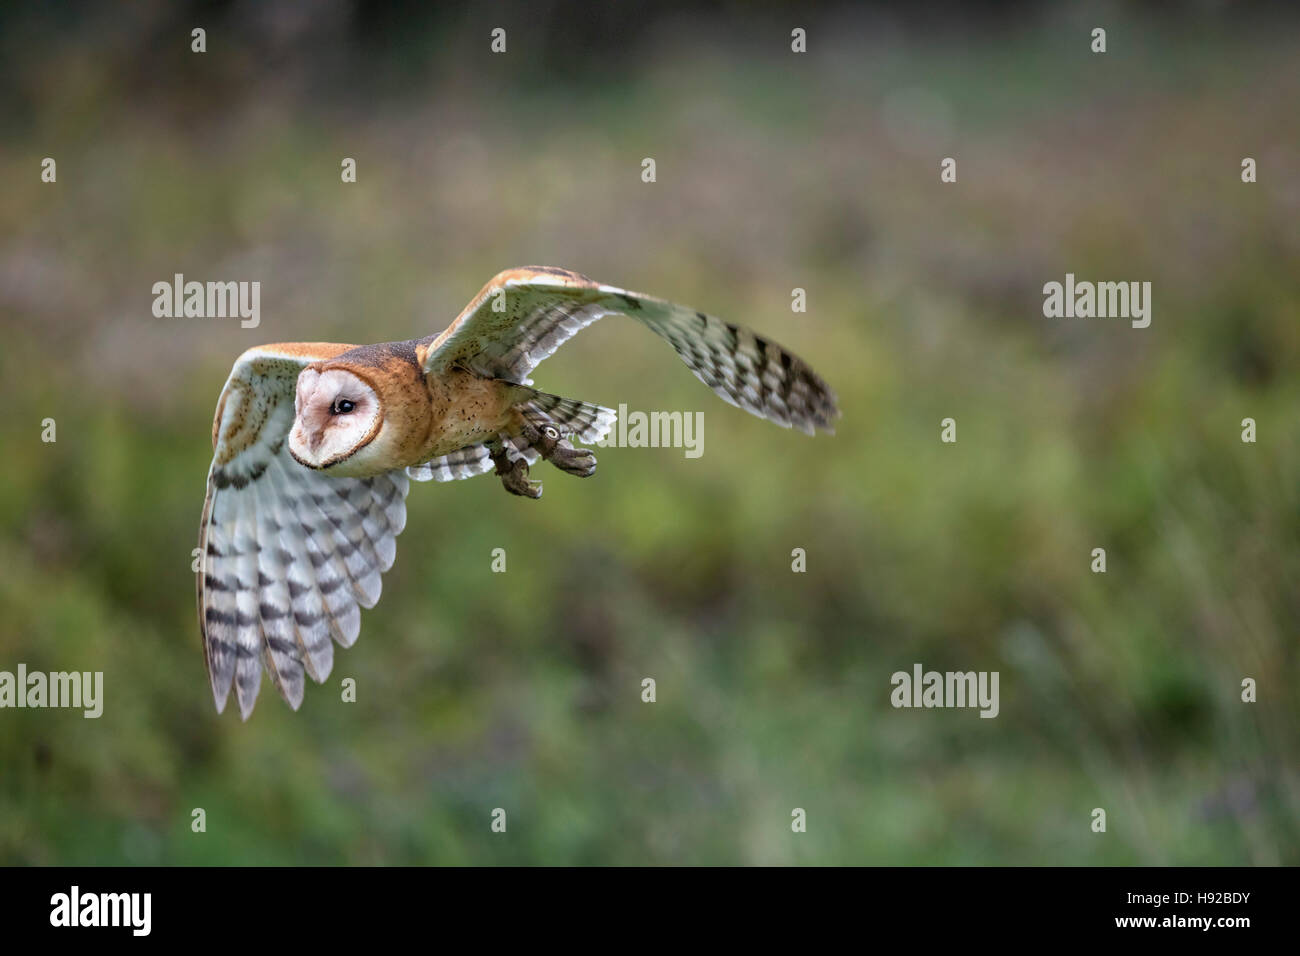 Chouette effraie en vol statique et Raptor Conservancy canadien Photo Stock